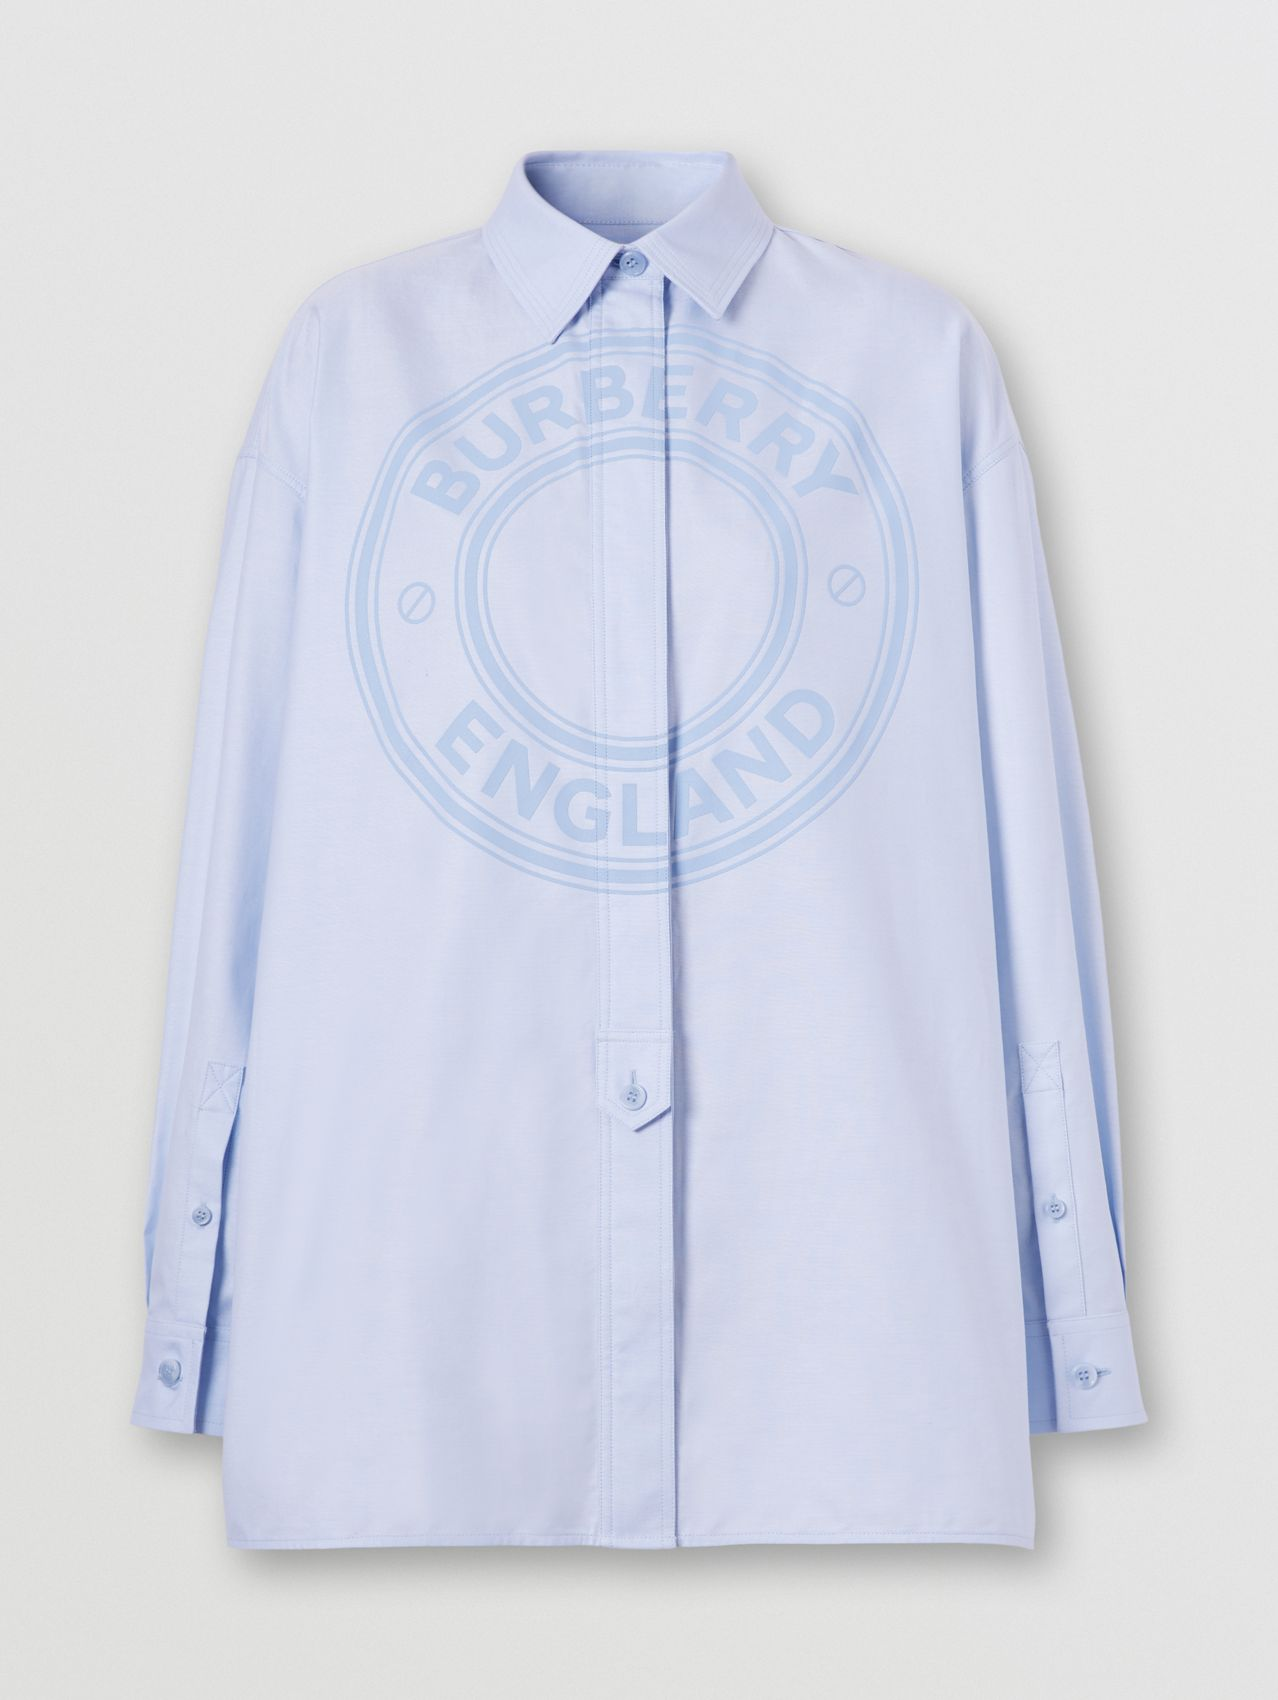 Logo Graphic Cotton Oxford Oversized Shirt in Pale Blue